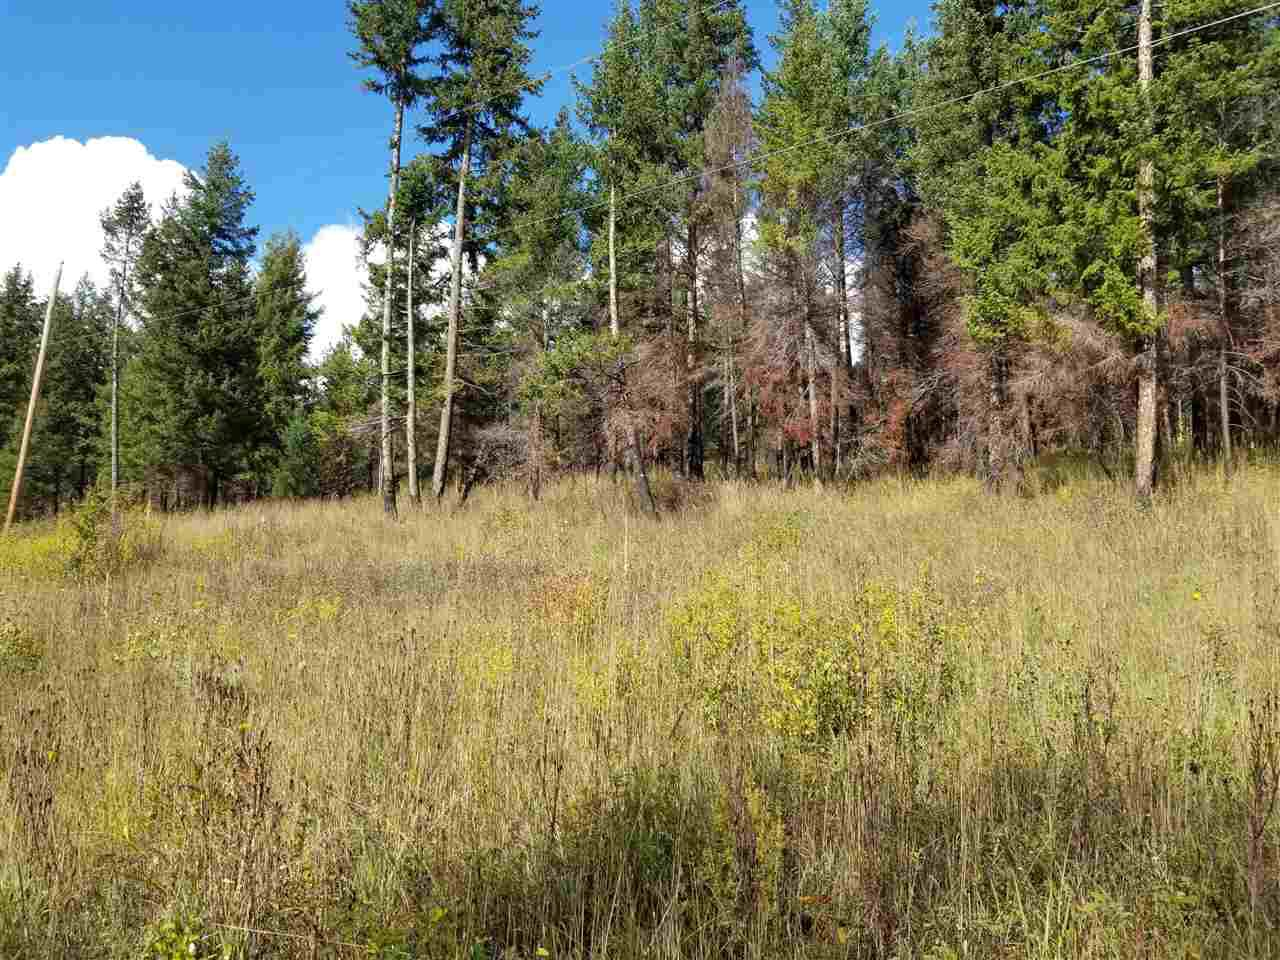 Main Photo: 5197 MOUNTAIN HOUSE Road in Williams Lake: Williams Lake - Rural North Land for sale (Williams Lake (Zone 27))  : MLS®# R2402749